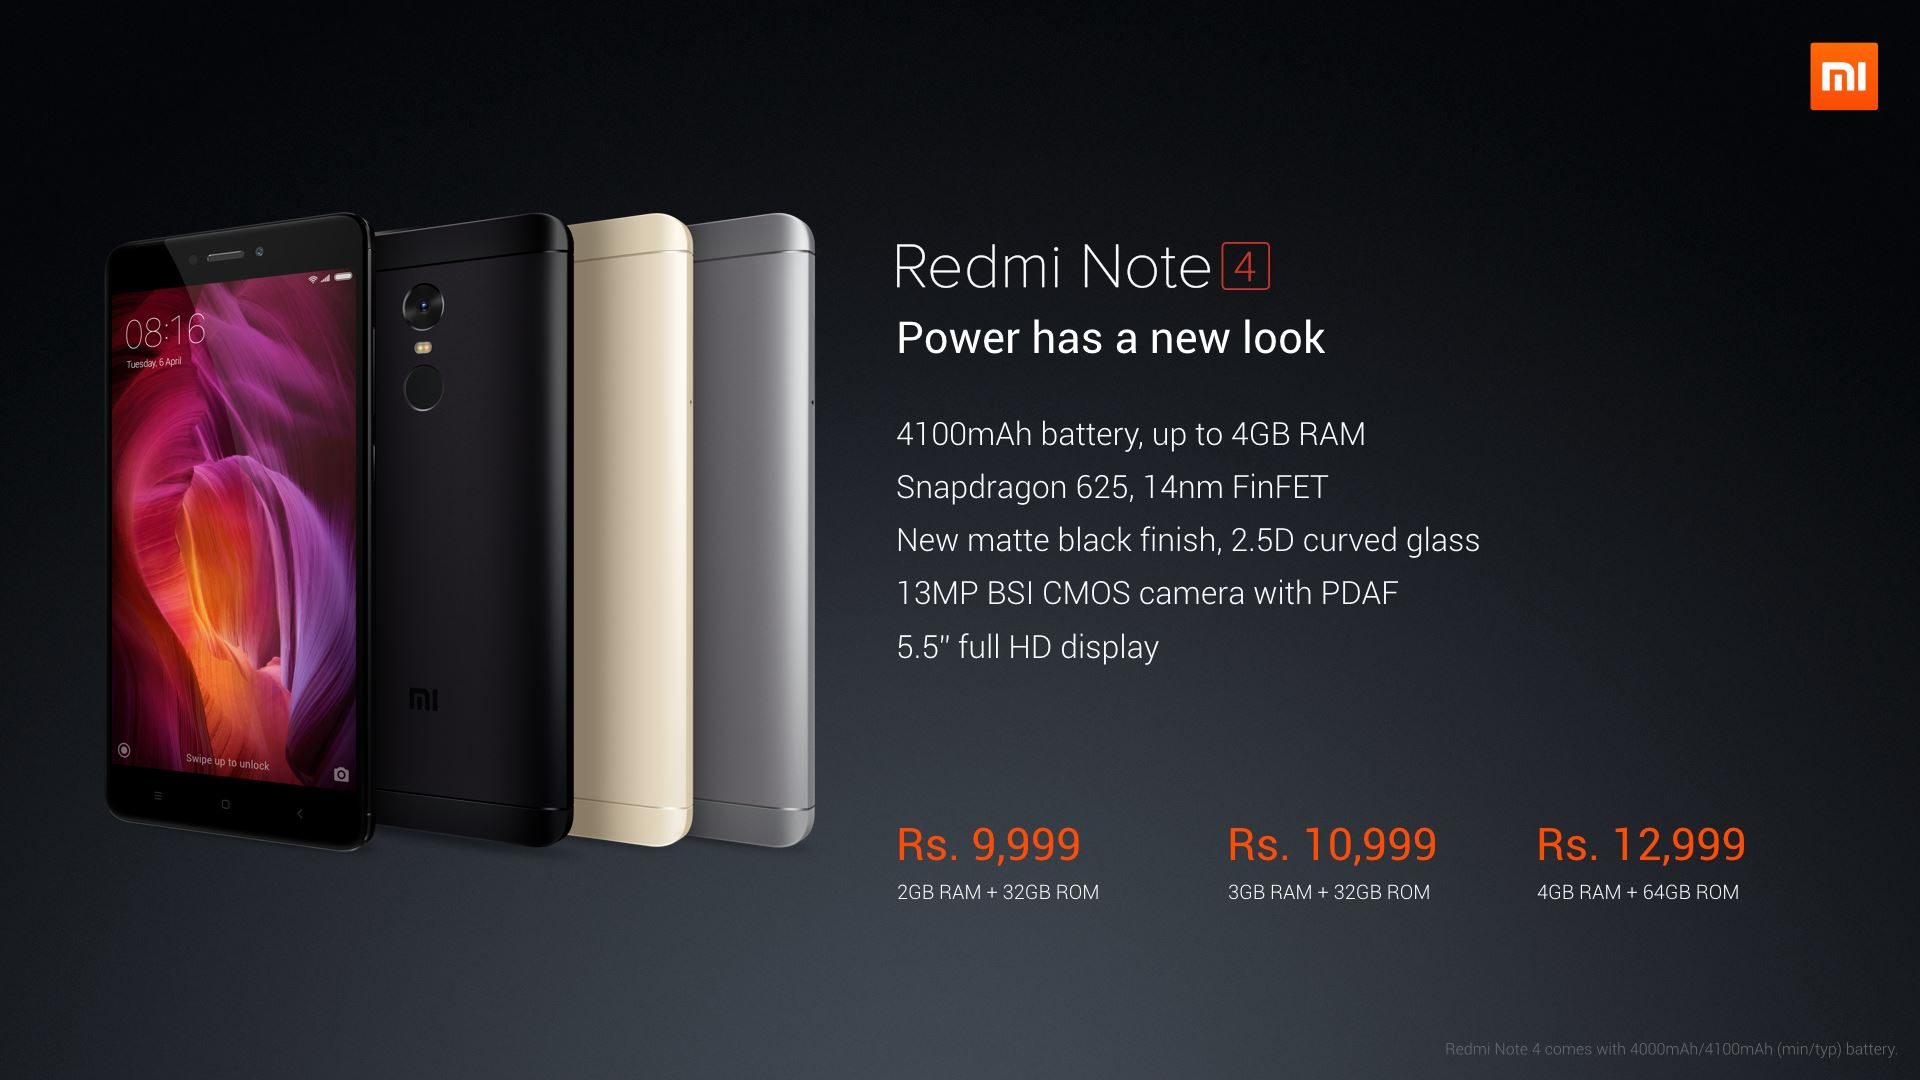 Xiaomi Introduces New Variant Of Redmi Note 4 In India